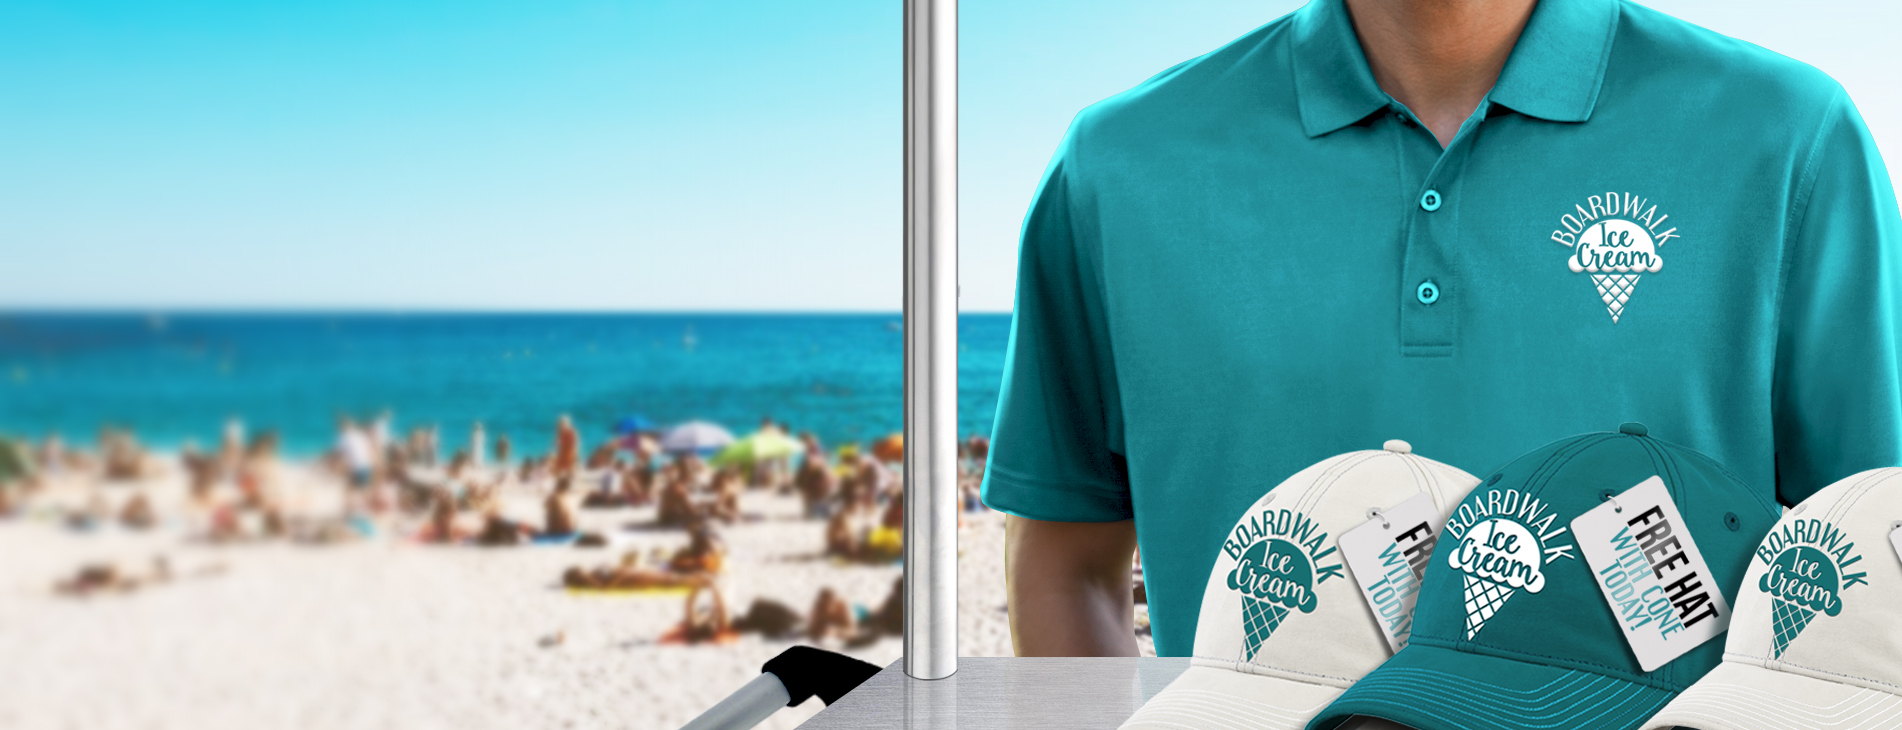 Stay cool with Branded Apparel!